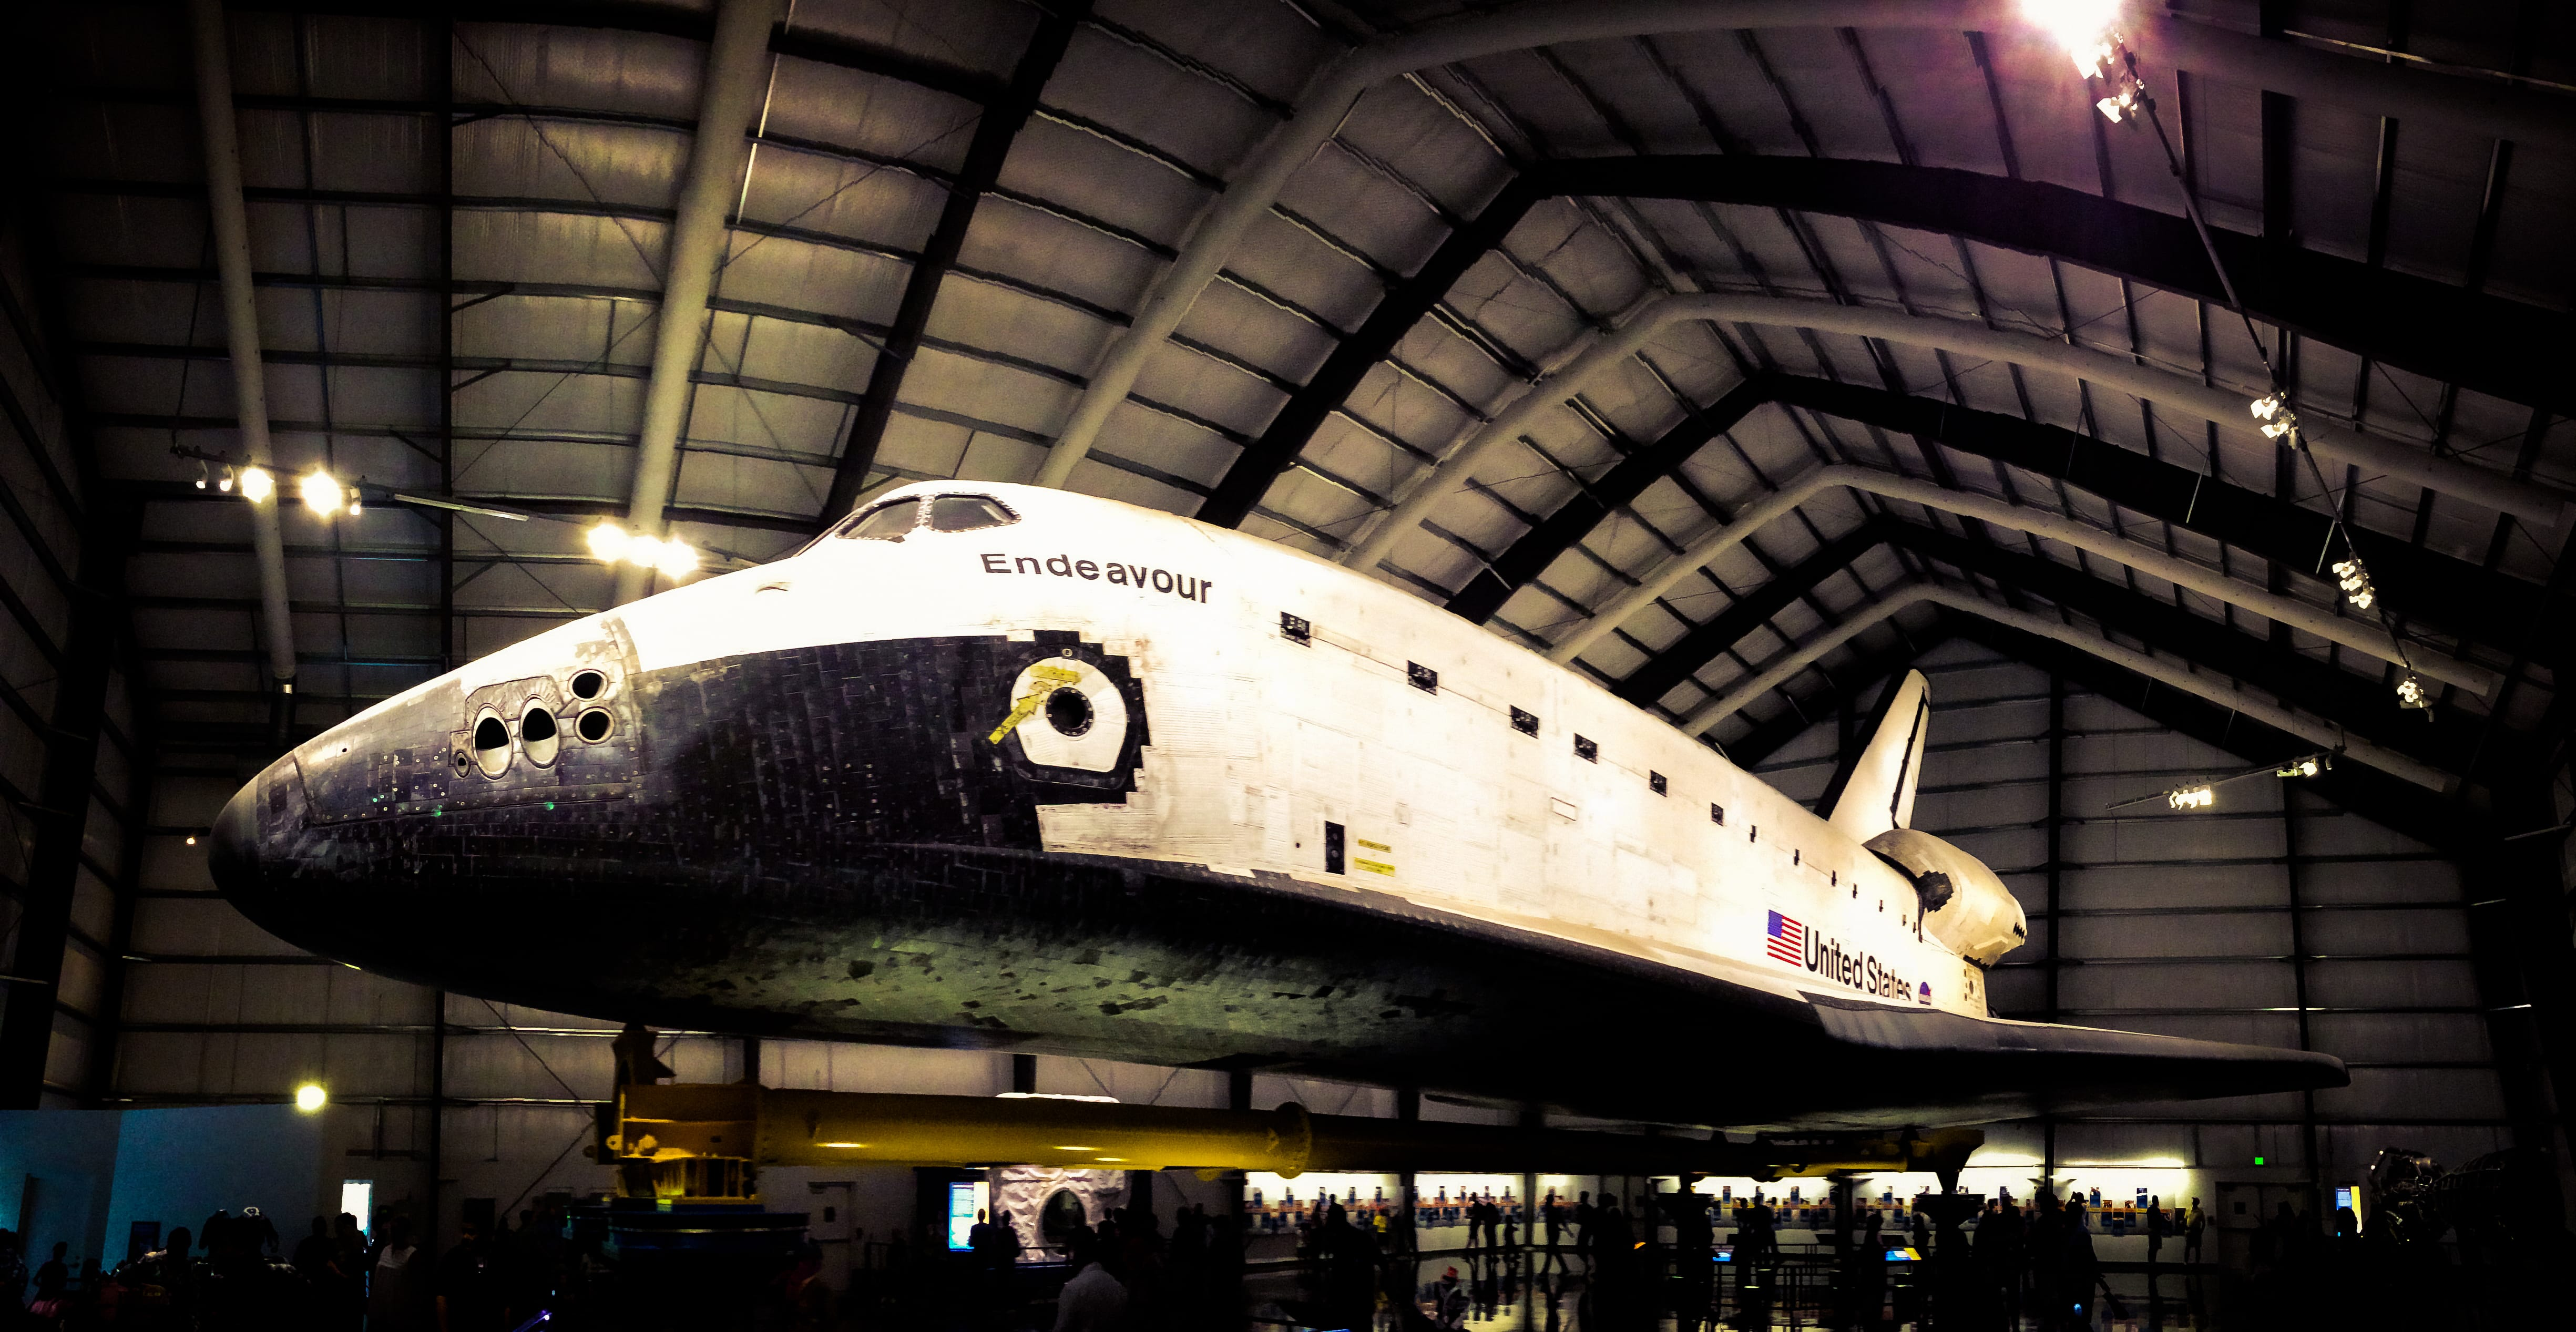 iPhone 5s - Space Shuttle Endeavour